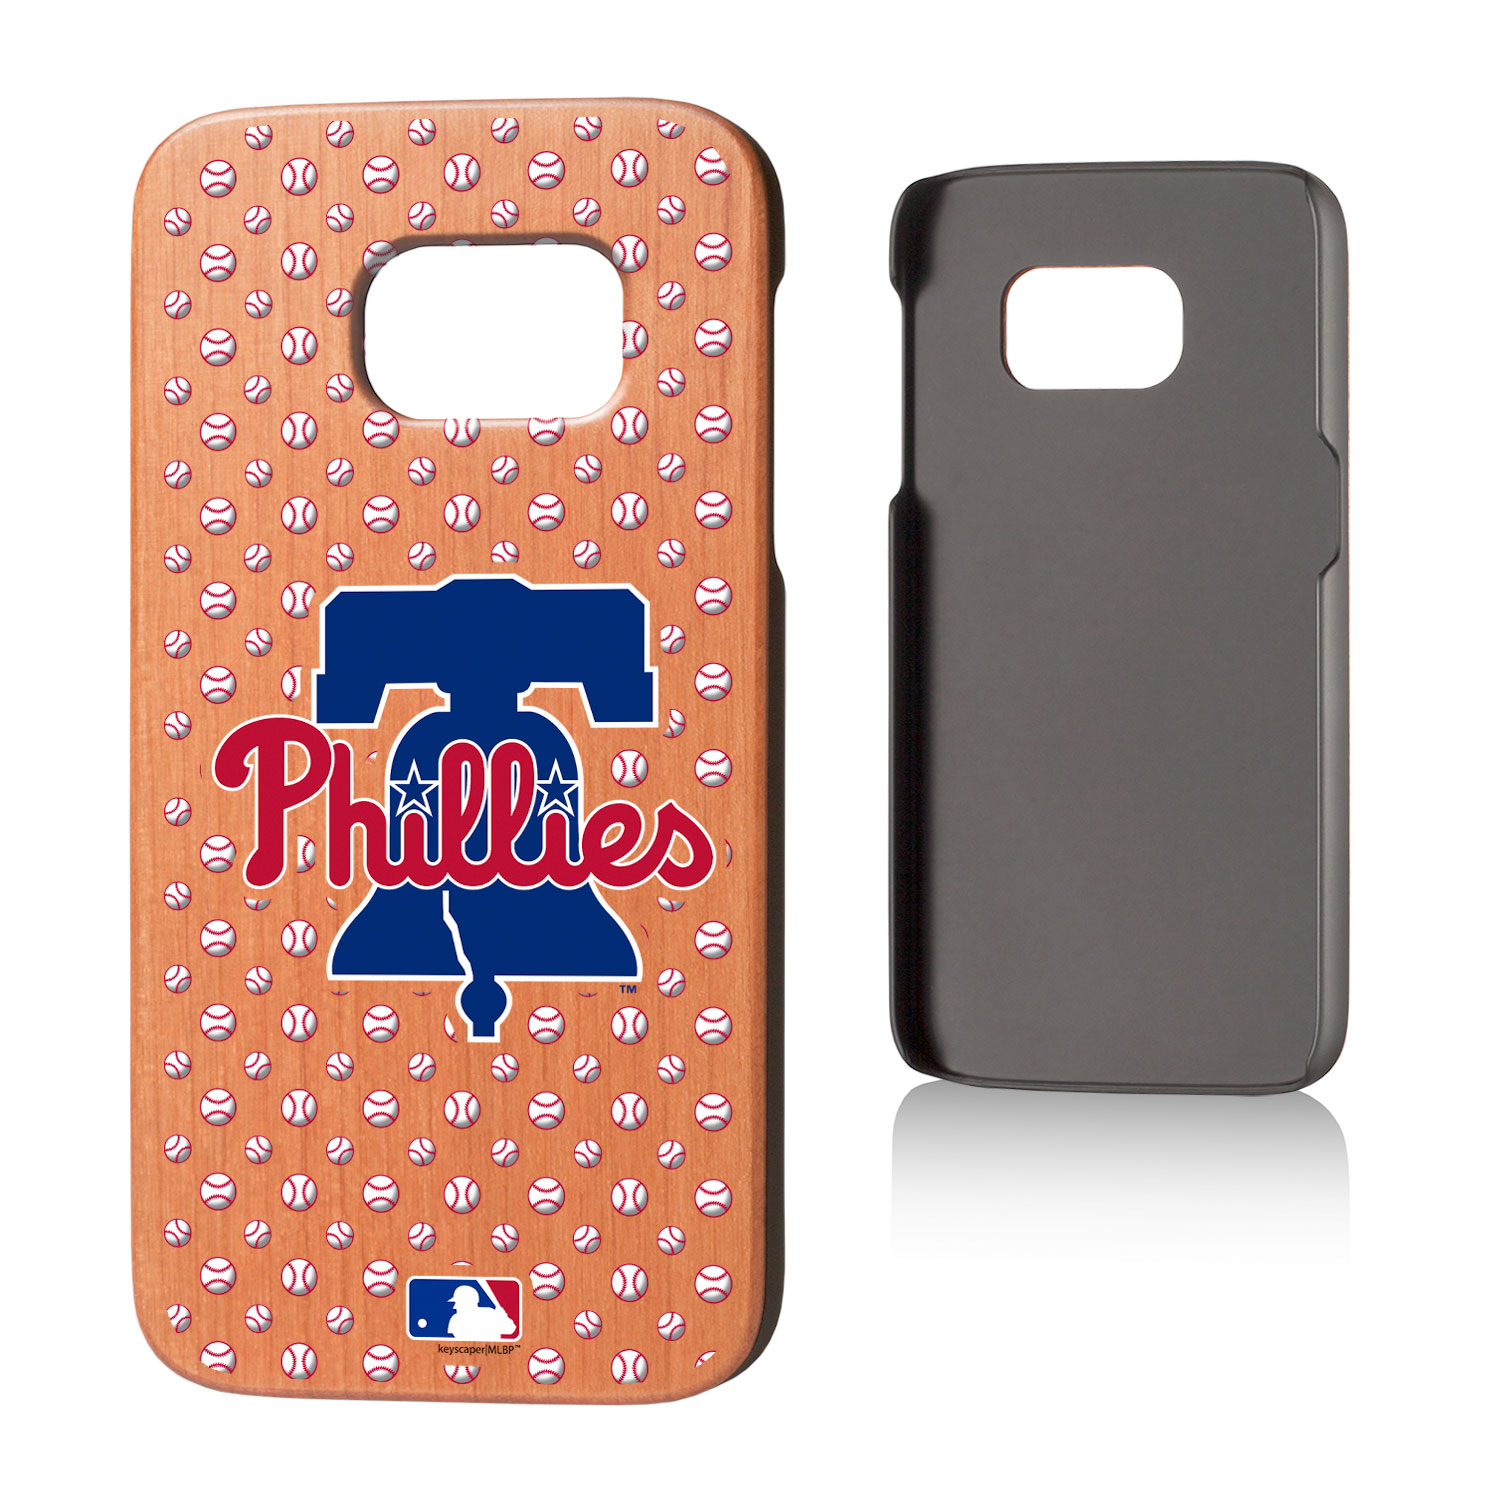 Philadelphia Phillies Galaxy S7 Cherry Wood Case